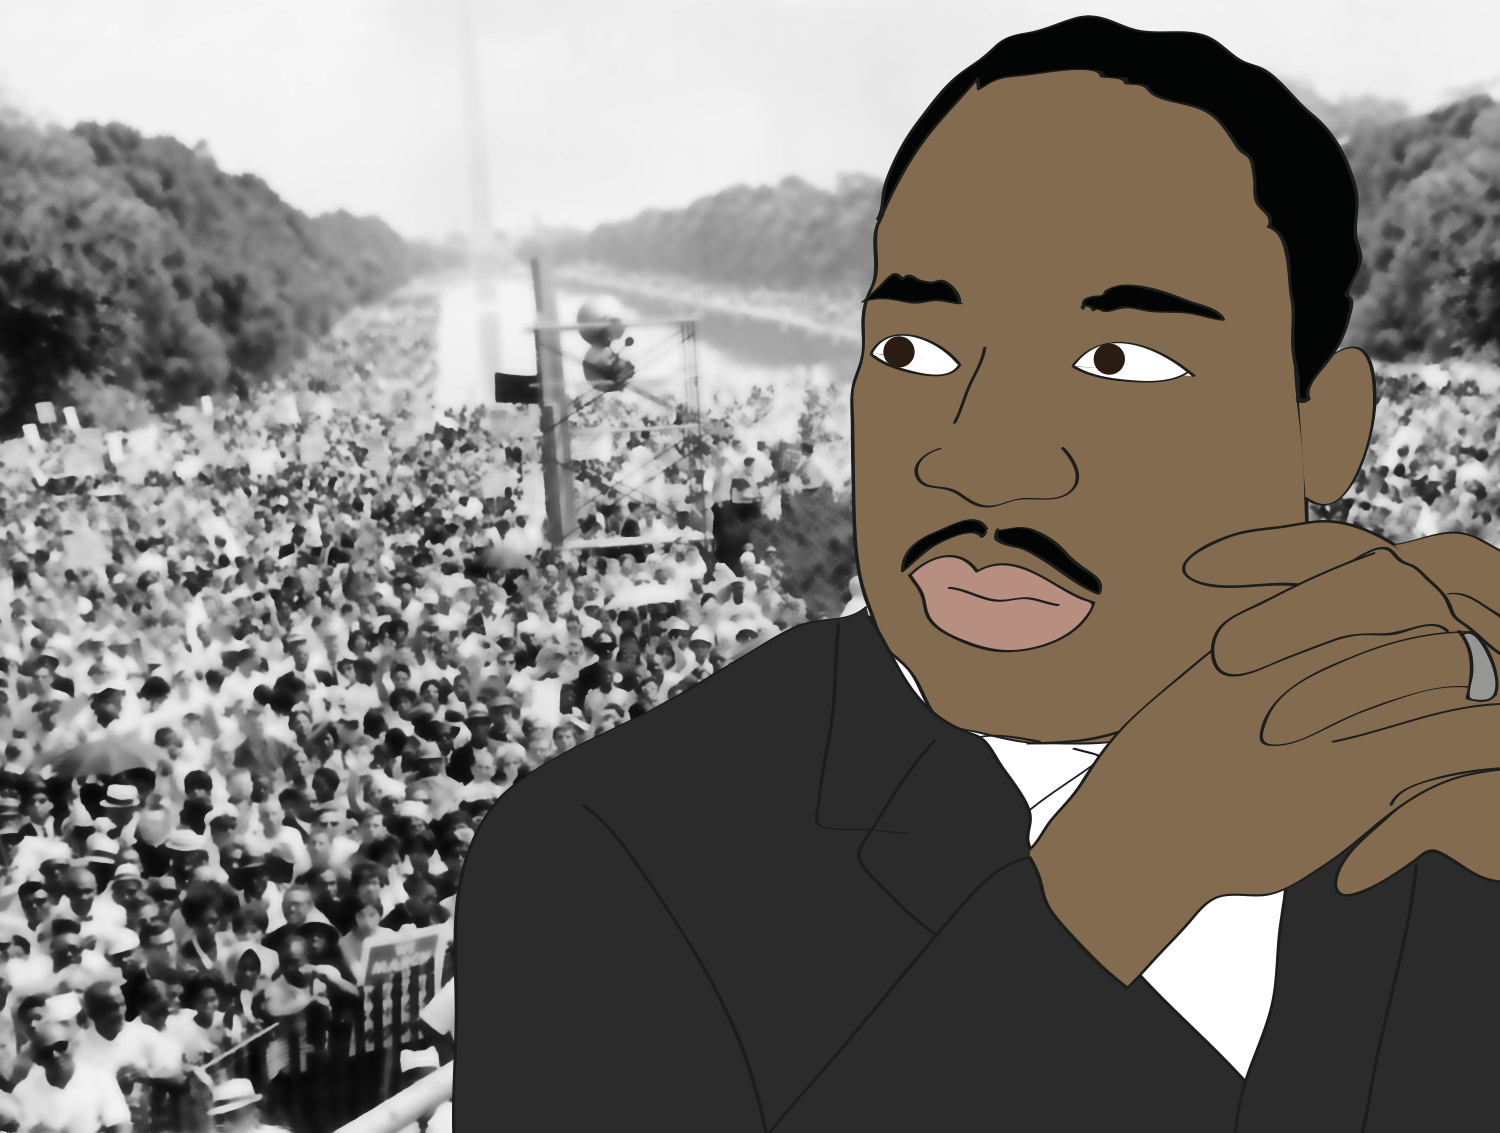 Martin Luther King Jr. illustration, Drawn for You